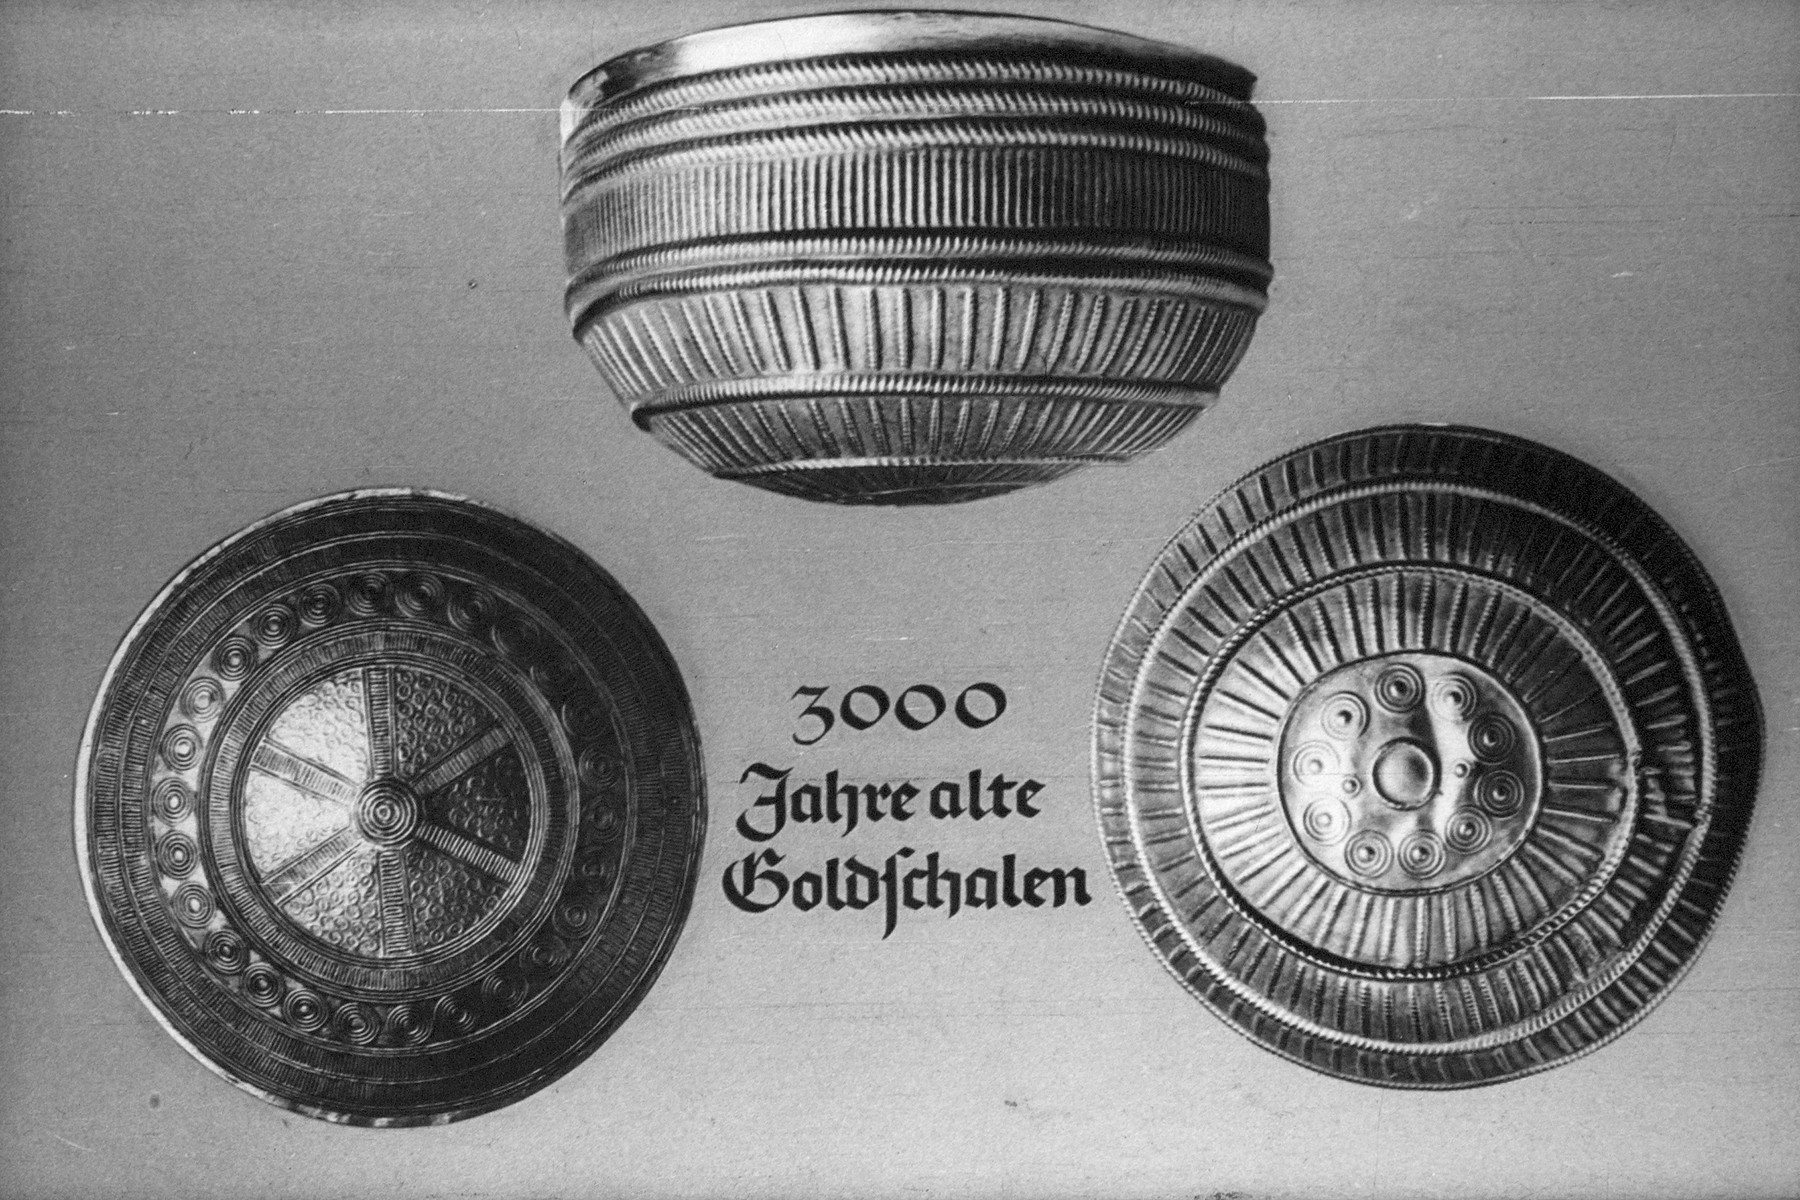 """18th Nazi propaganda slide for a Hitler Youth educational presentation entitled """"5000 years of German Culture.""""  3000 Jahre alte Goldschalen // 3000 year old gold dishes/bowls"""